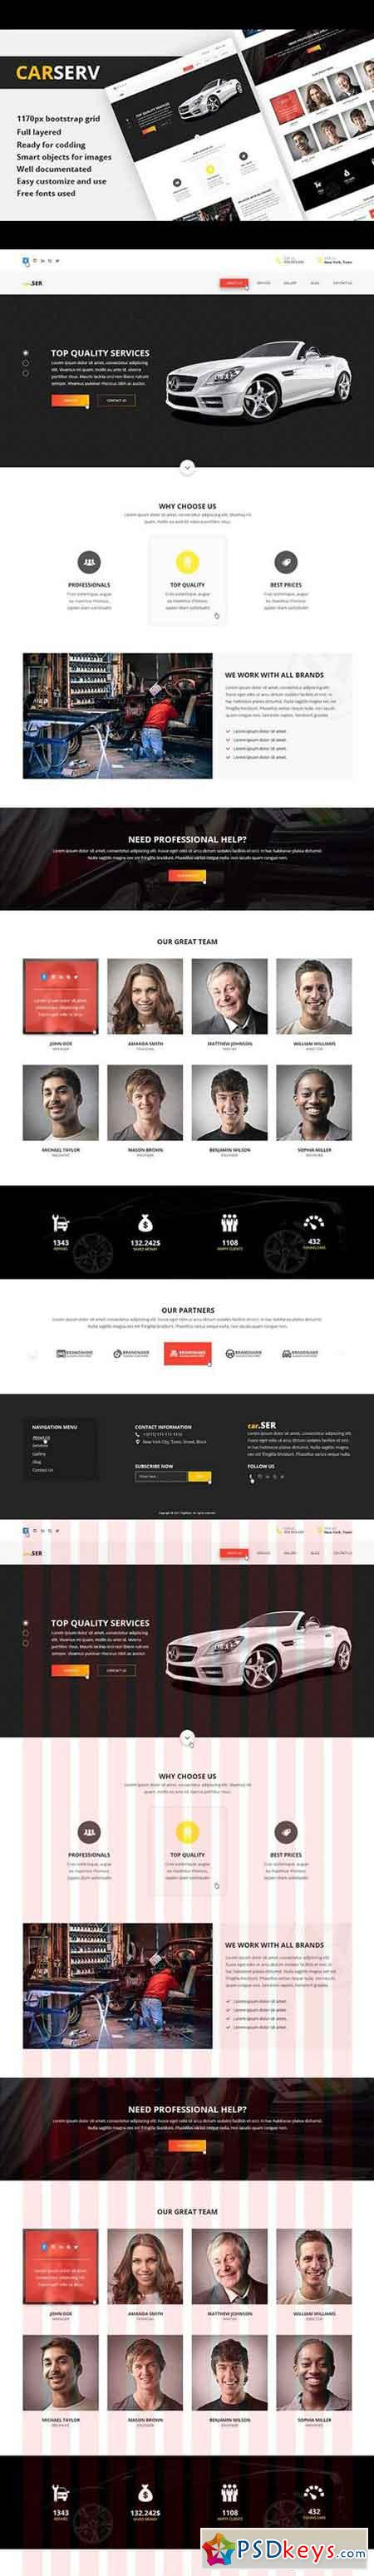 CARSERV Photoshop Web Template Free Download Photoshop - Web template torrent